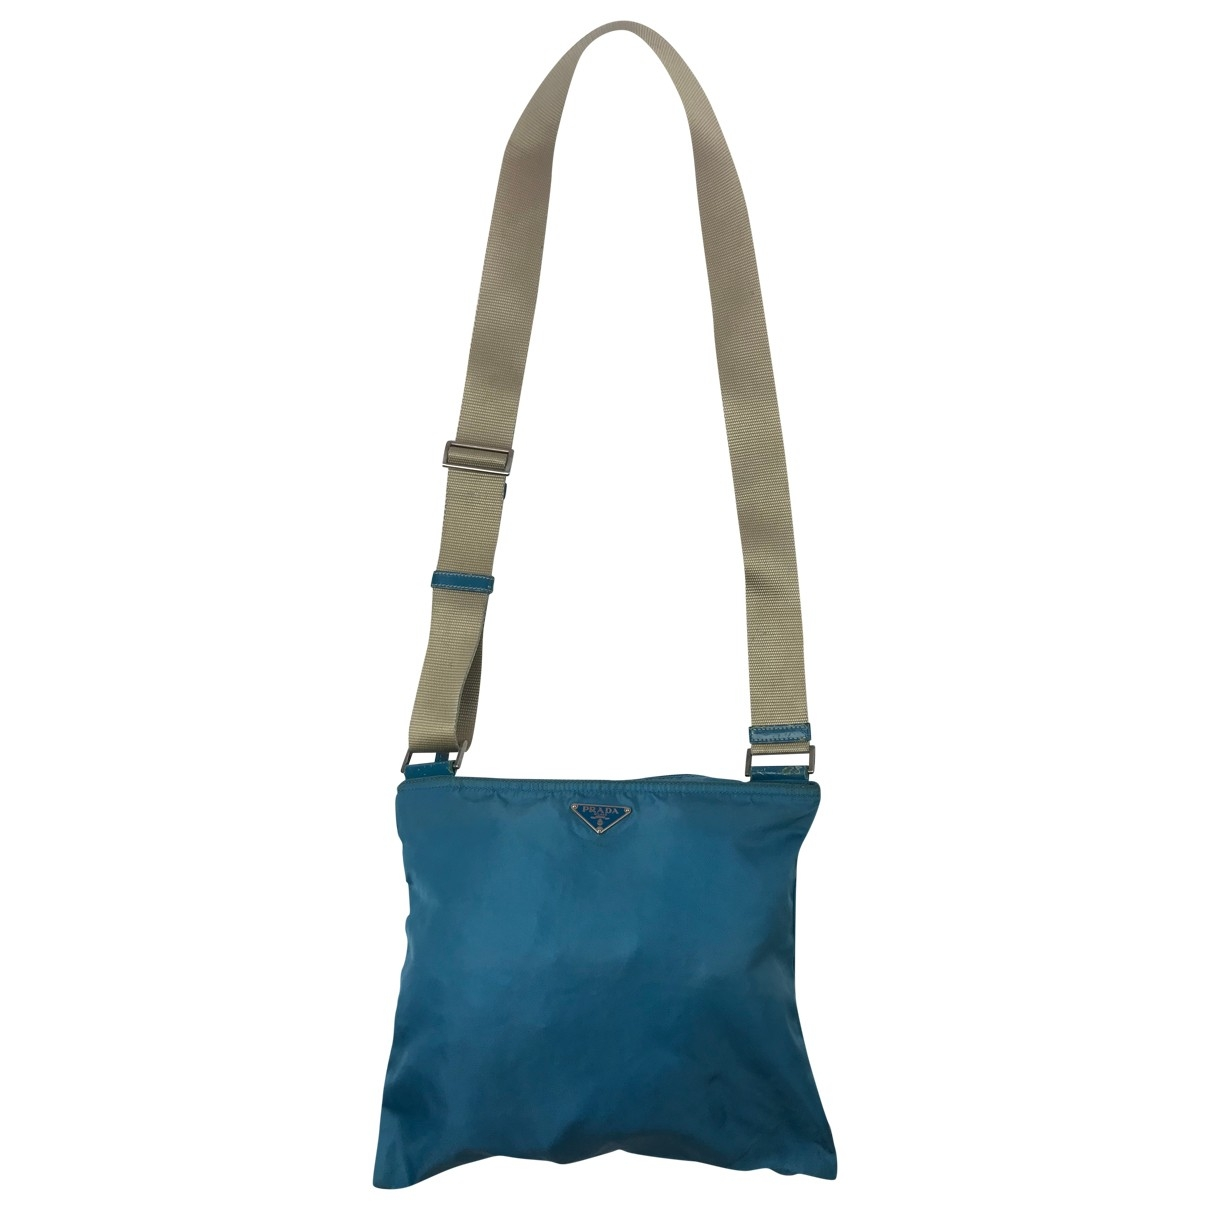 Prada \N Green handbag for Women \N